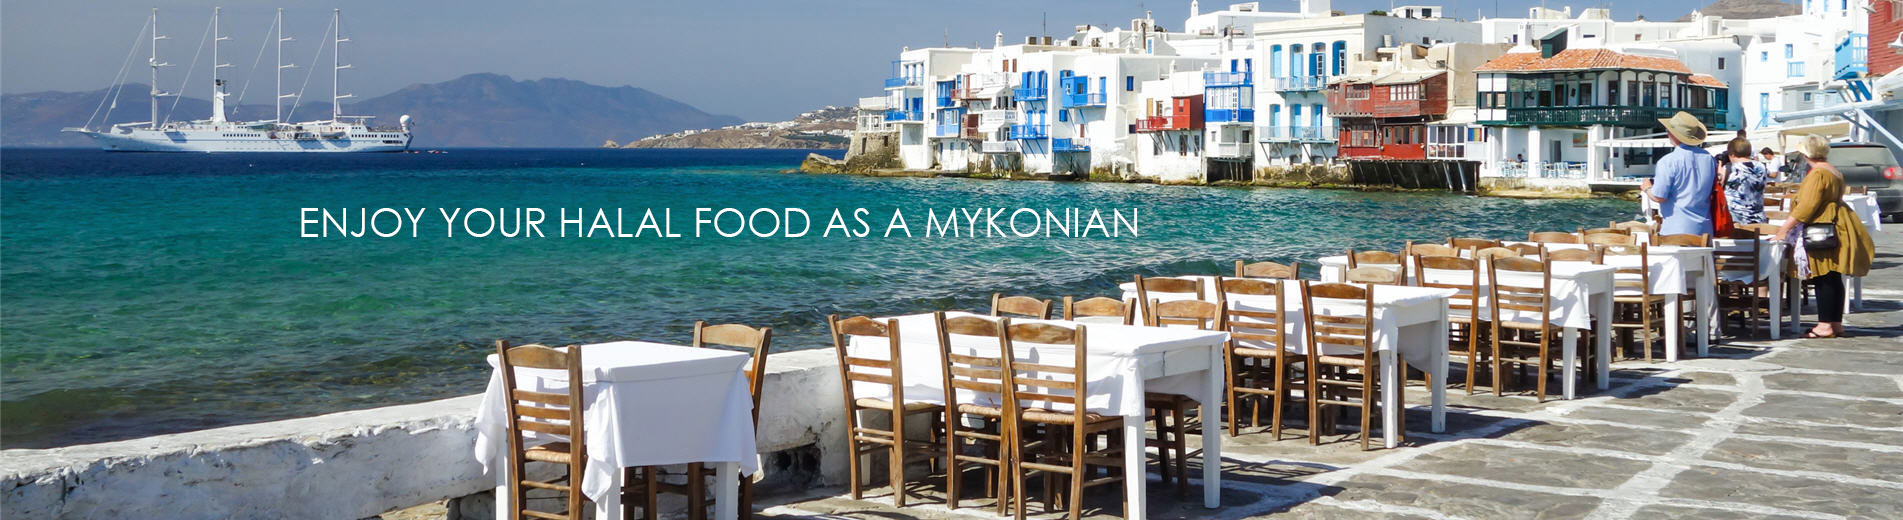 ENJOY YOUR HALAL FOOD AS A MYKONIAN